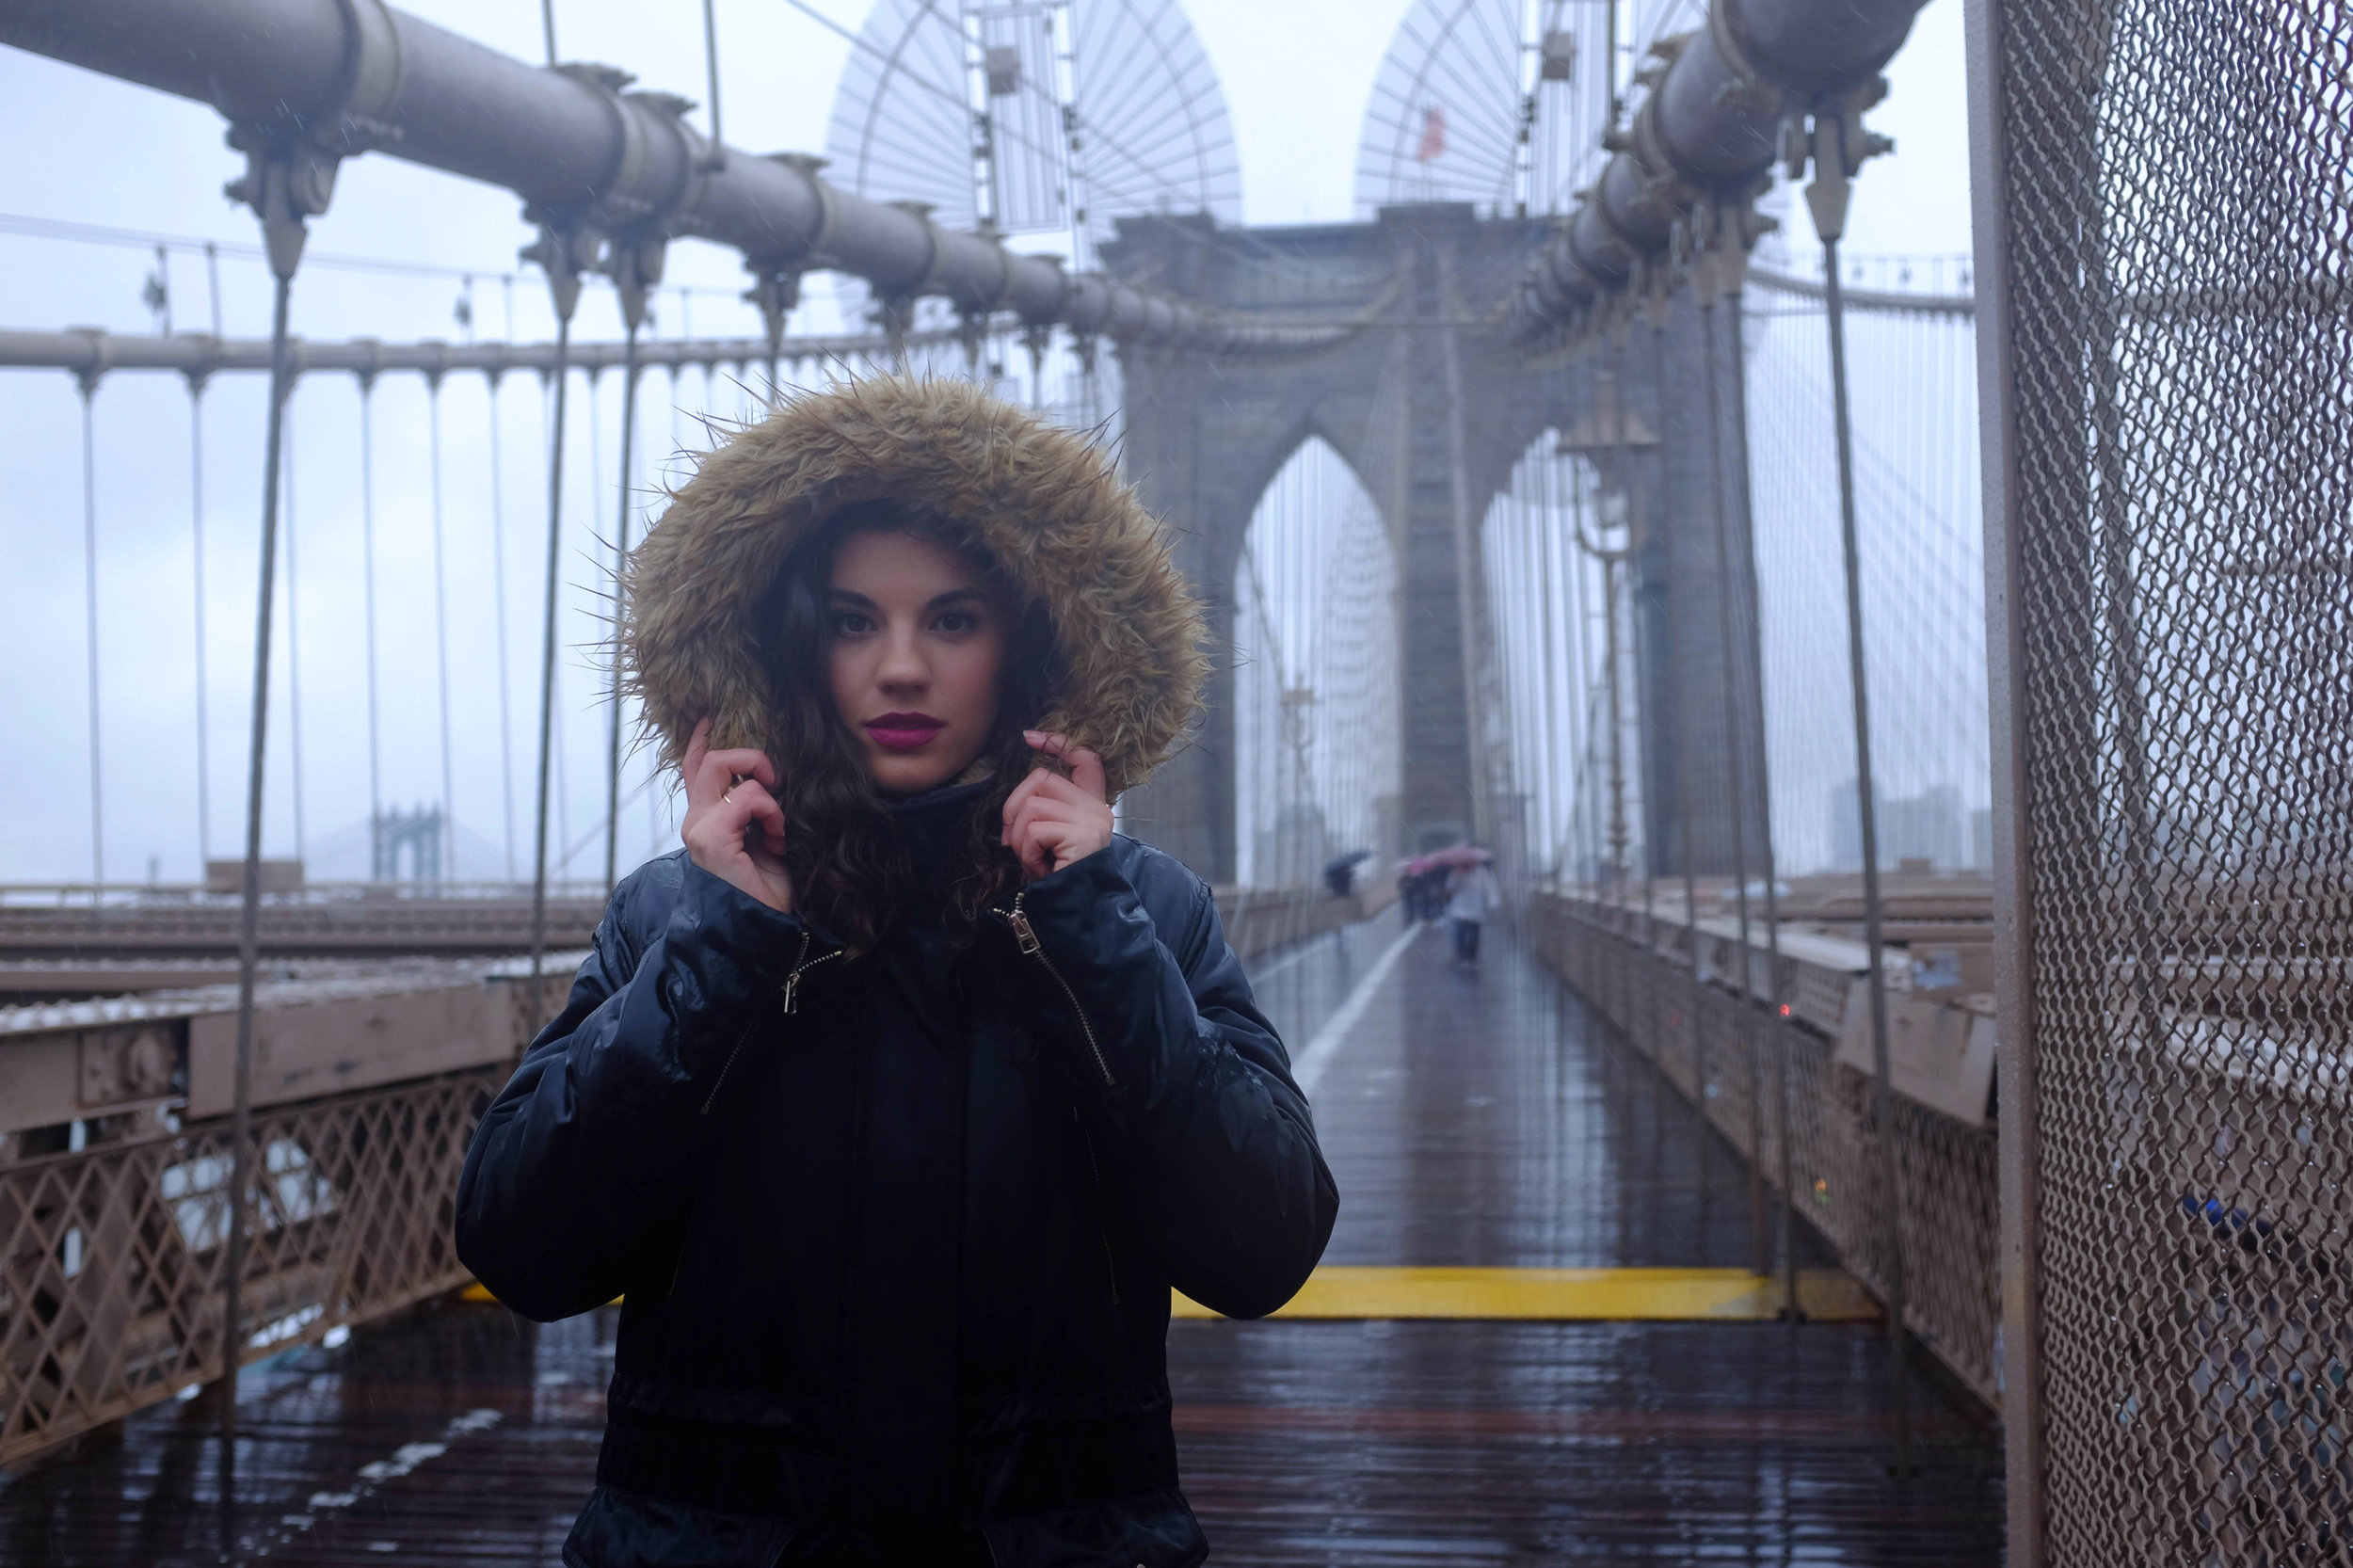 Kaci Nicole - Alexis Brooklyn Bridge.jpg